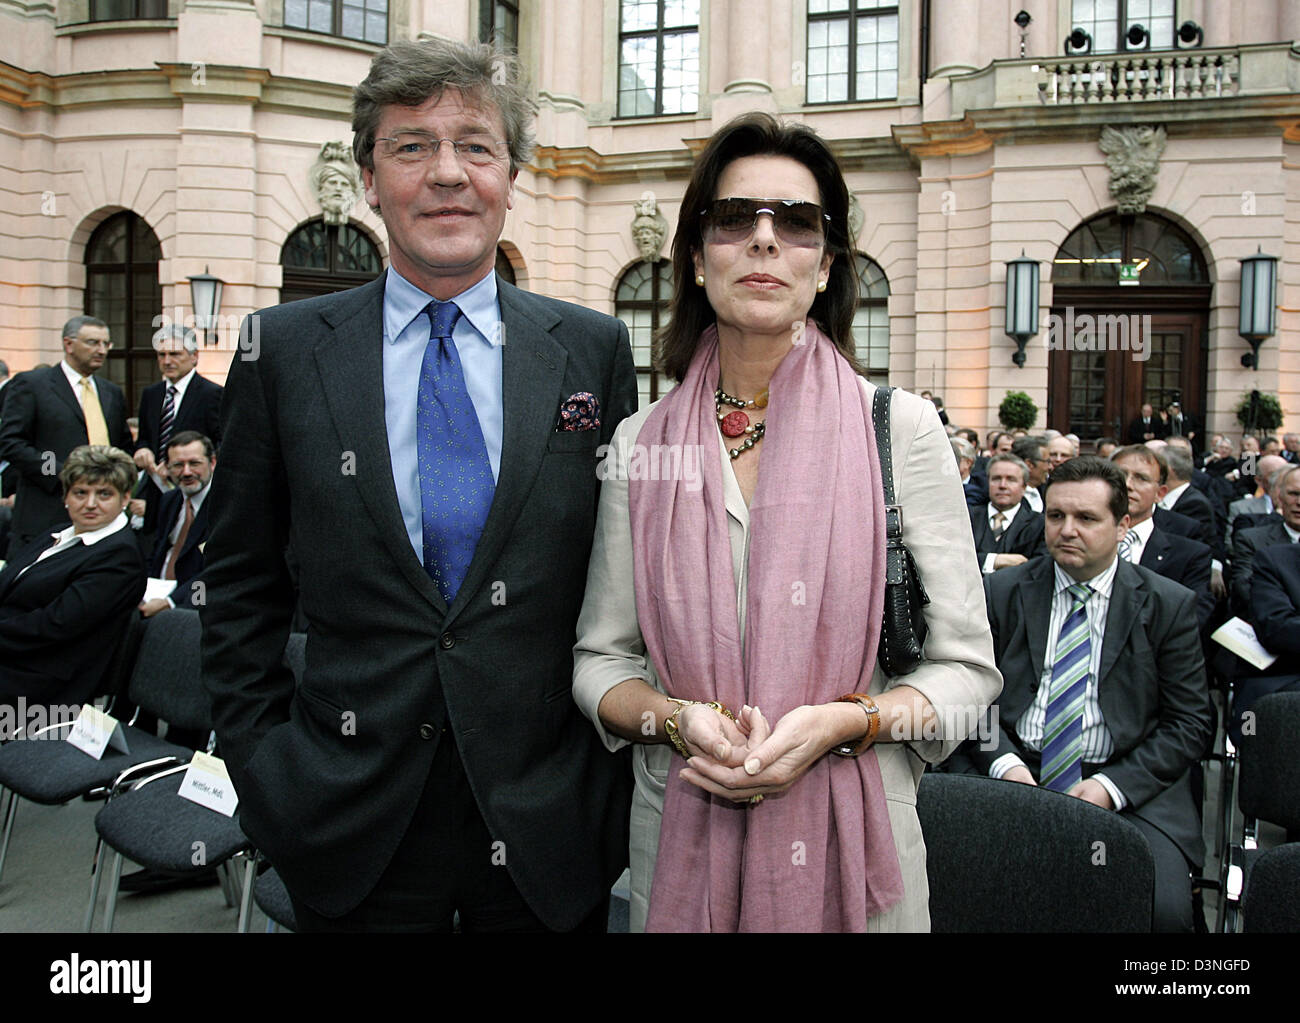 Ernst August Prince of Hanover and his wife Caroline Princess of Monaco stand next to each other at the German Historical - Stock Image